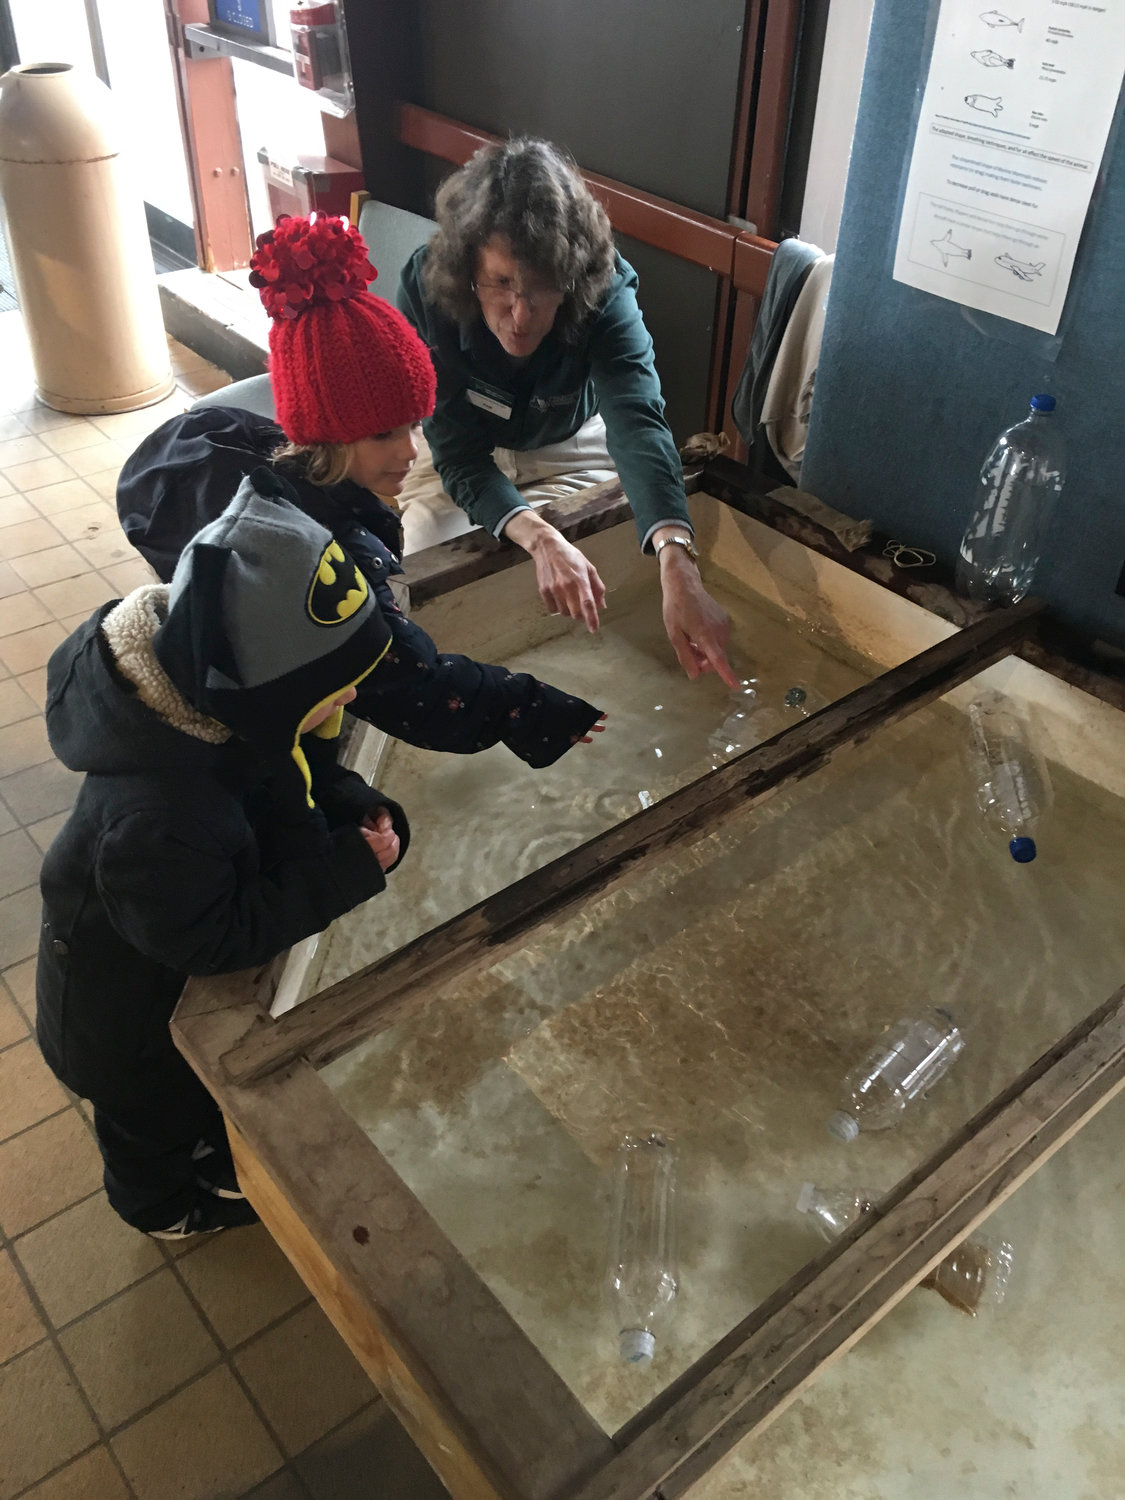 Five-year-old Isla Lomitola and her brother, 3-year-old Dylan, learned about different mammals' skin and fur, and how the animals move through water, from nature center Environmental Educator Pam Hunter.